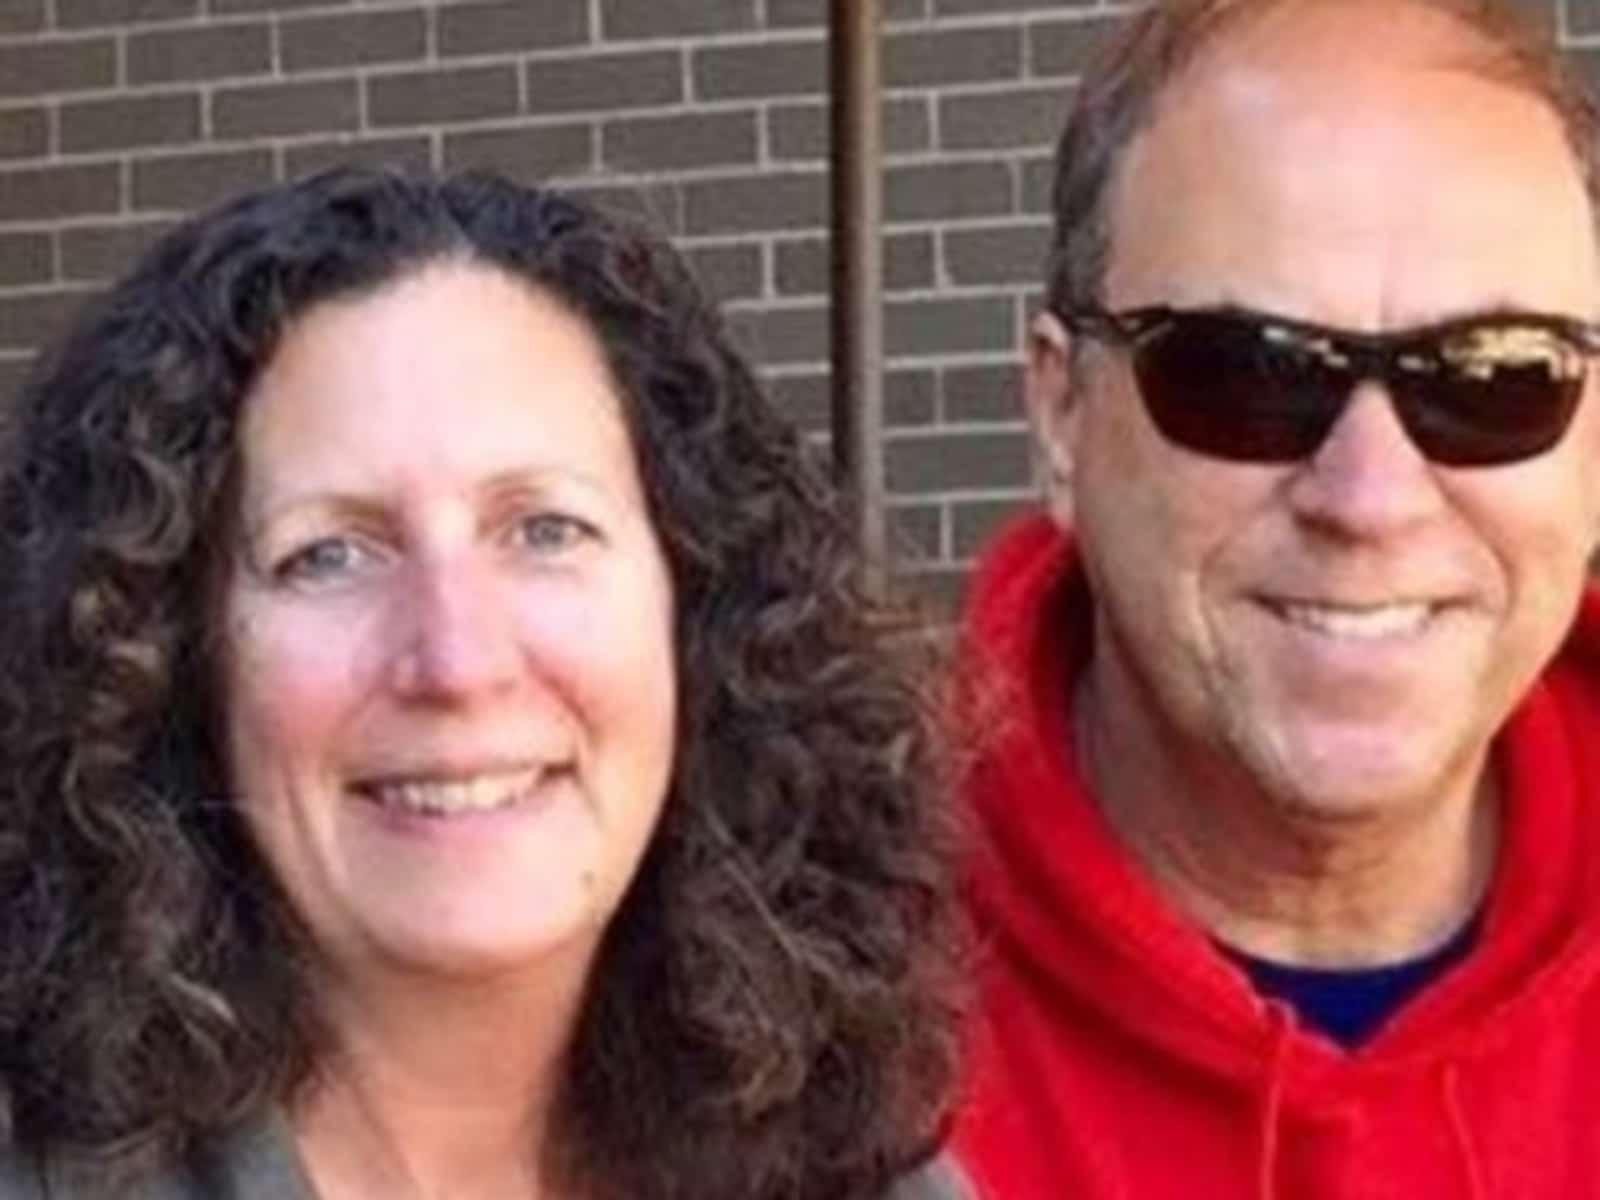 Charles & Julie from Fairfax, Virginia, United States